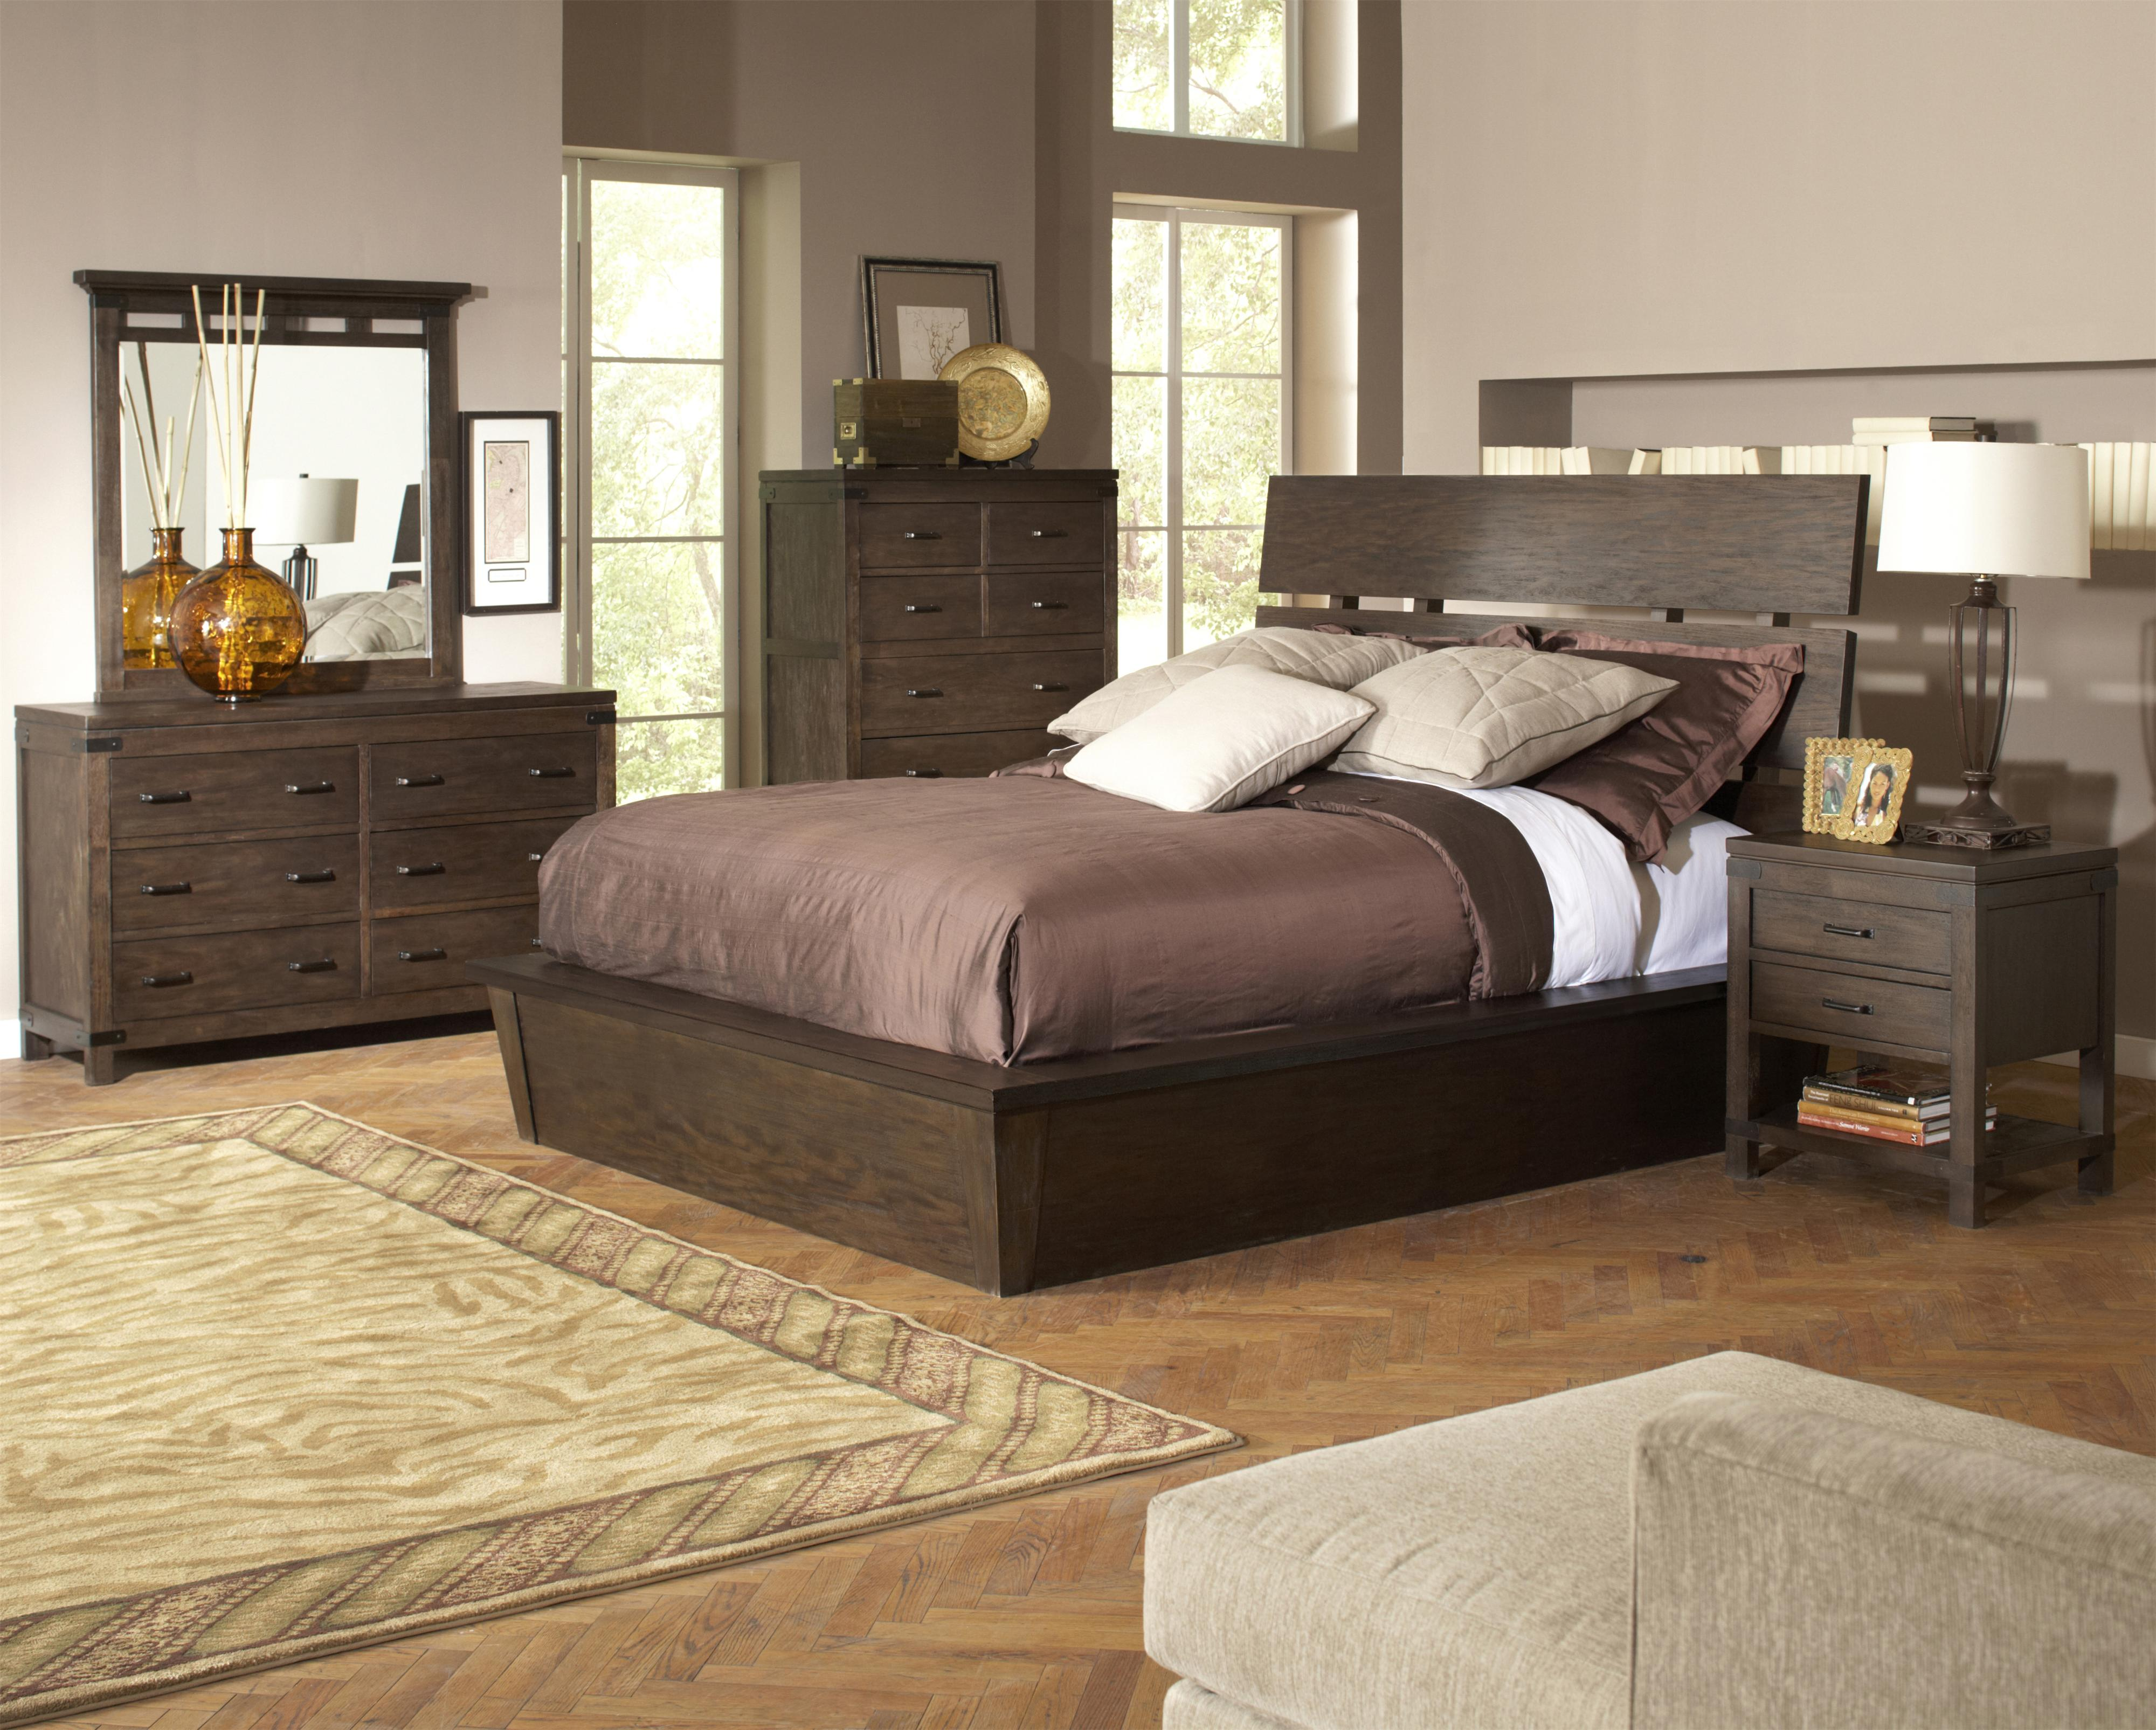 products locator kentwood item bed platform drawers panel dealer ahfa with rails headboard king b home storage magnussen california footboard